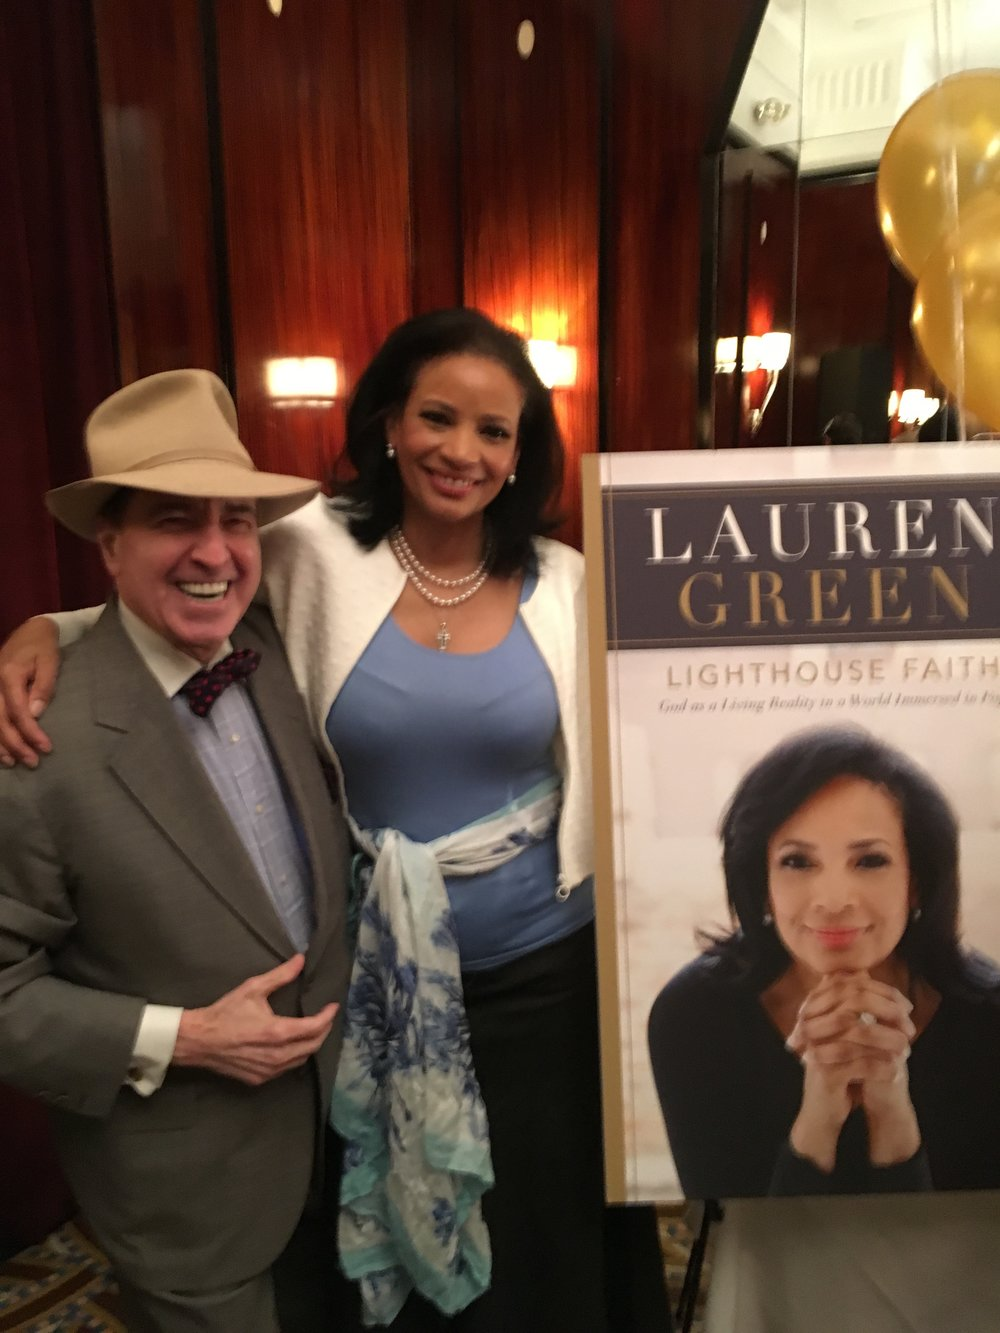 Lauren Green with her good friend John Tantillo at the Lighthouse Book Launch Party